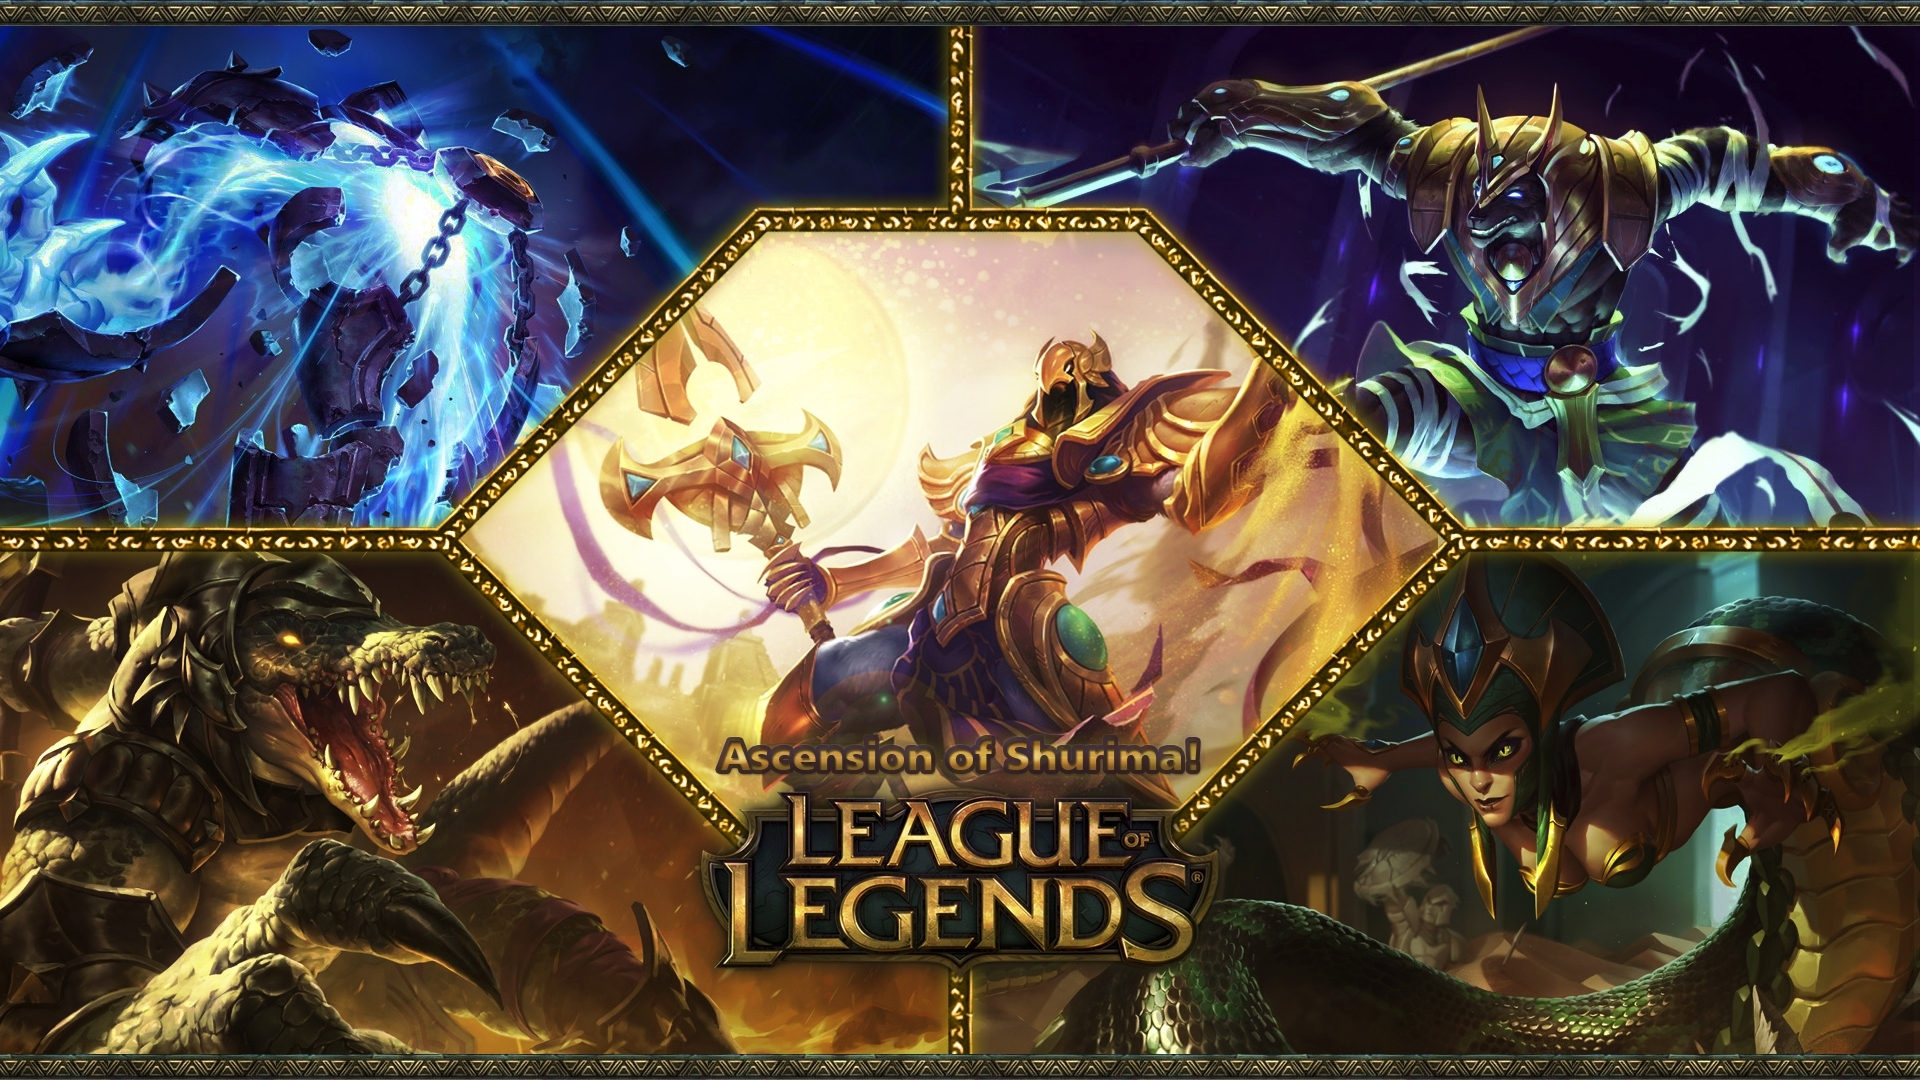 1920x1080 League Of Legends Game Poster Laptop Full Hd 1080p Hd 4k